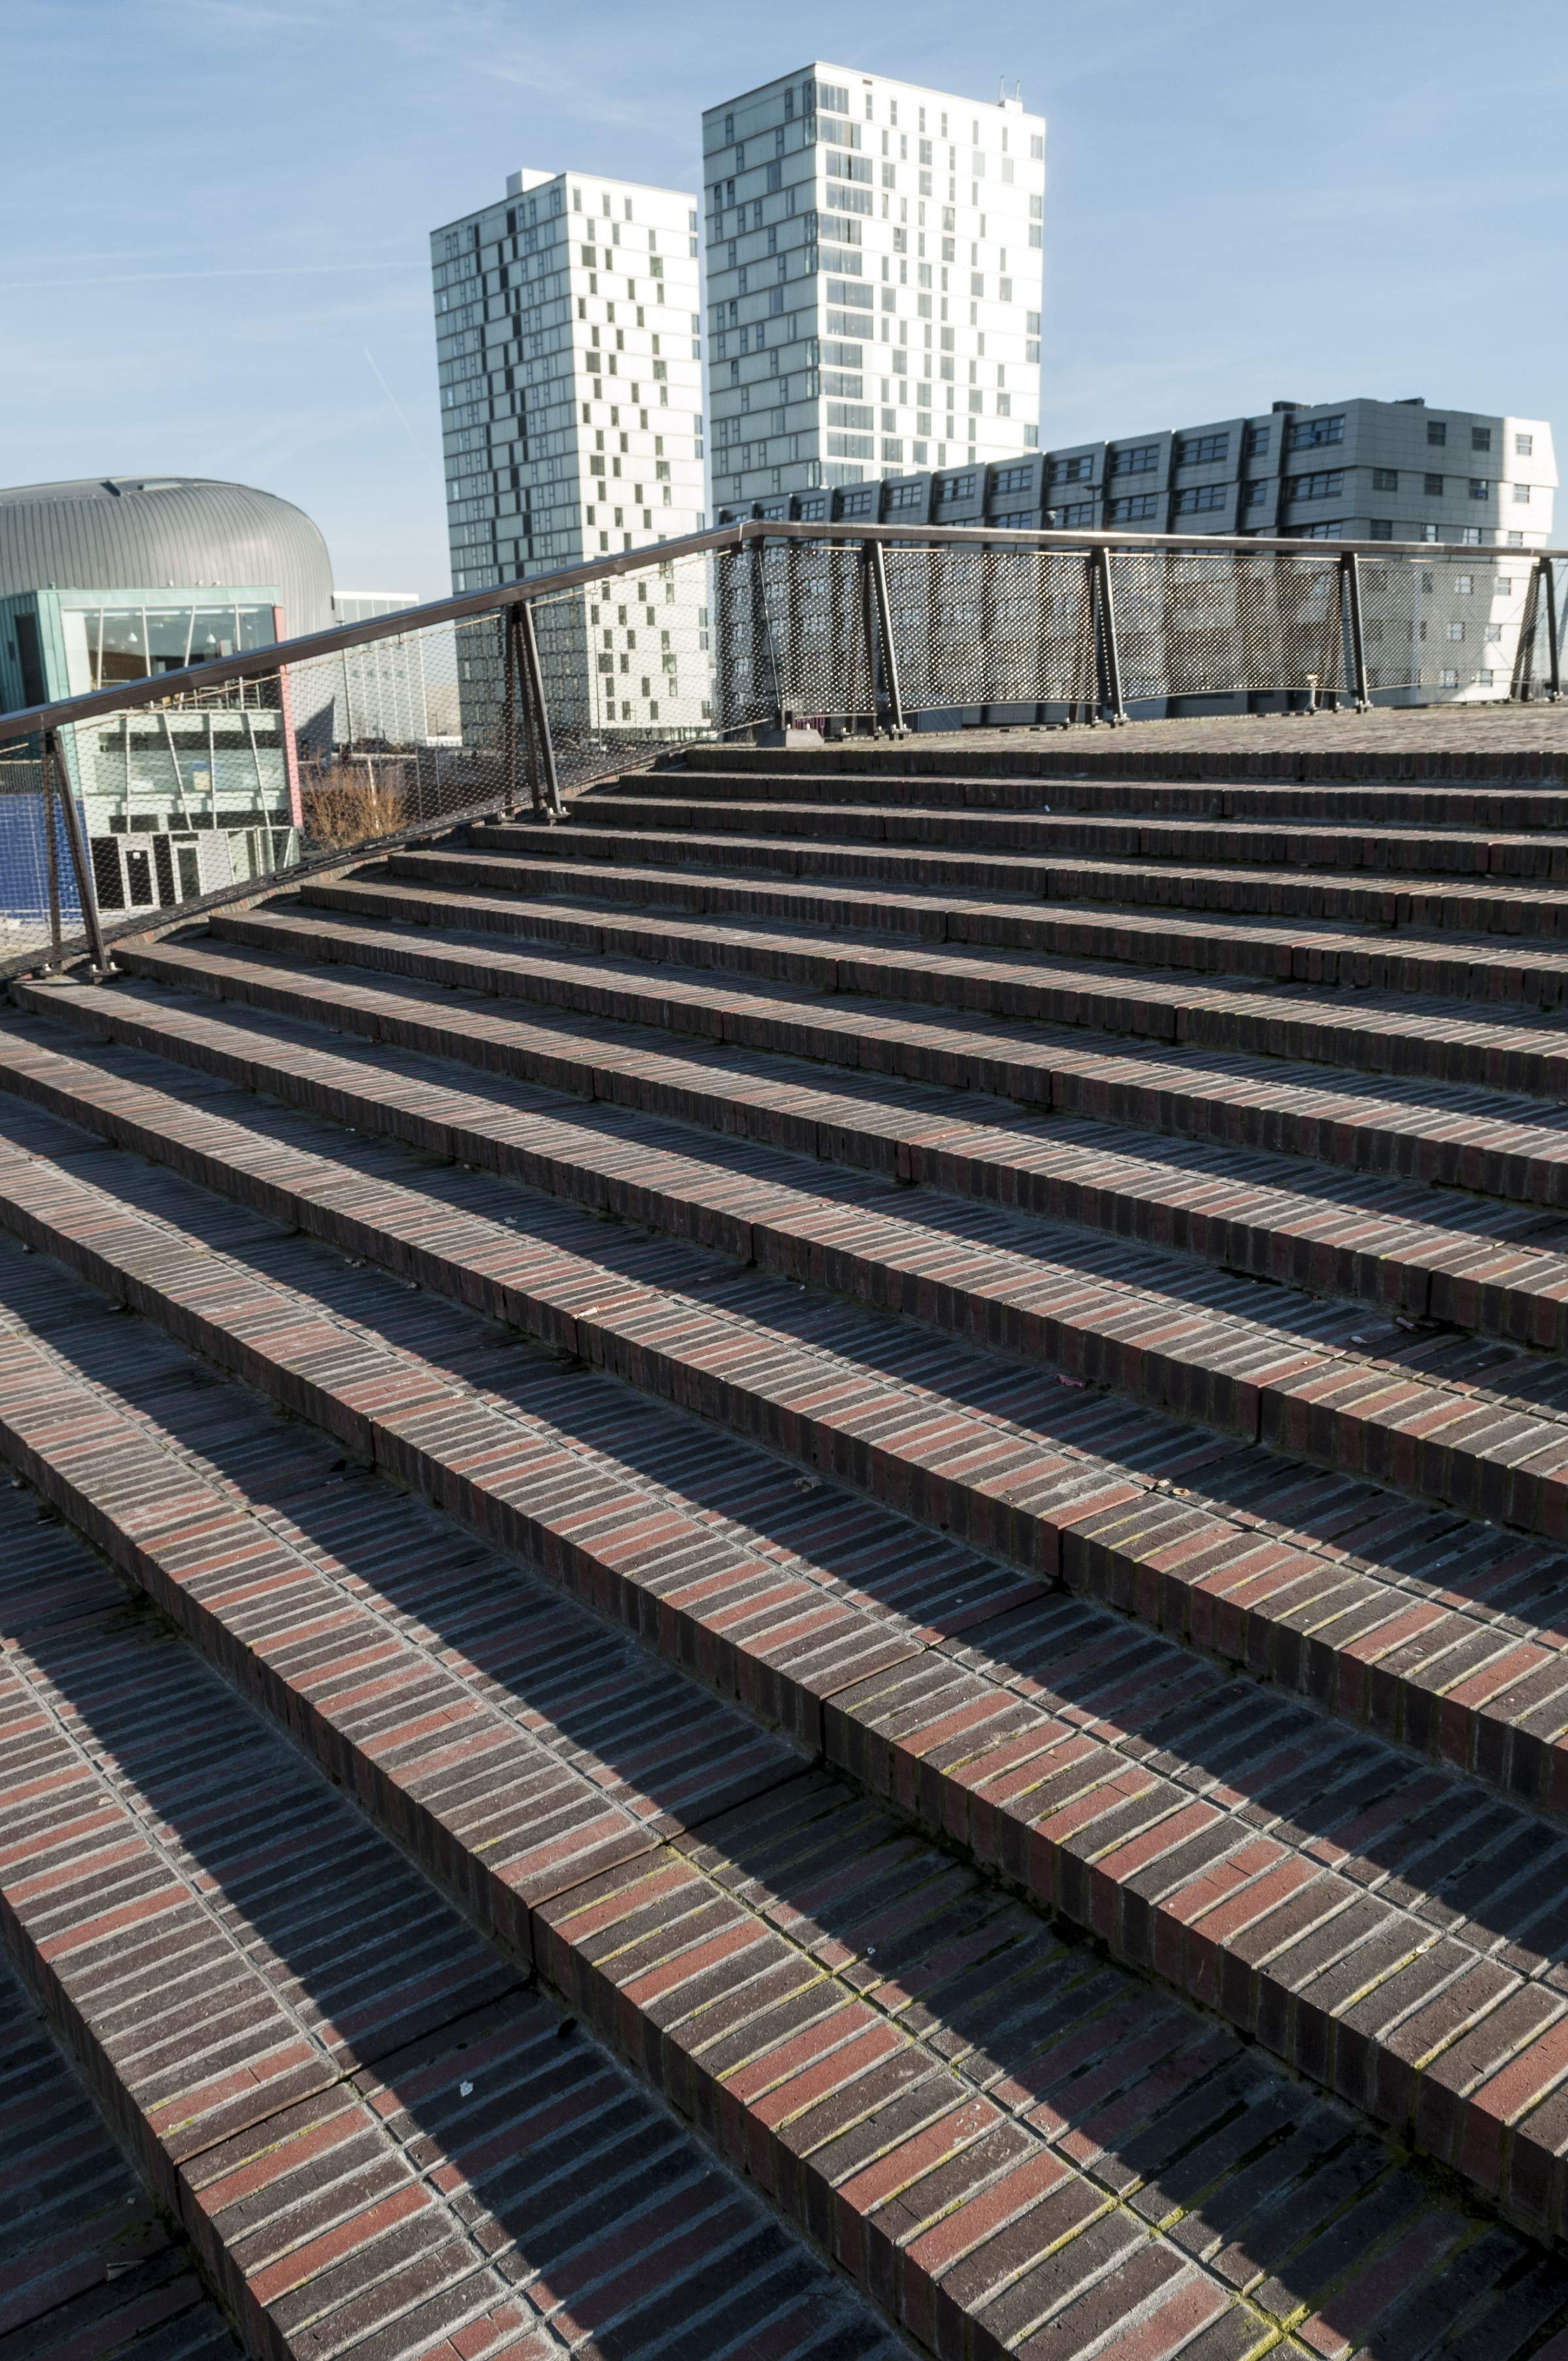 LANDLAB Weerwaterplein roof steps_photo by Hans Hebbing